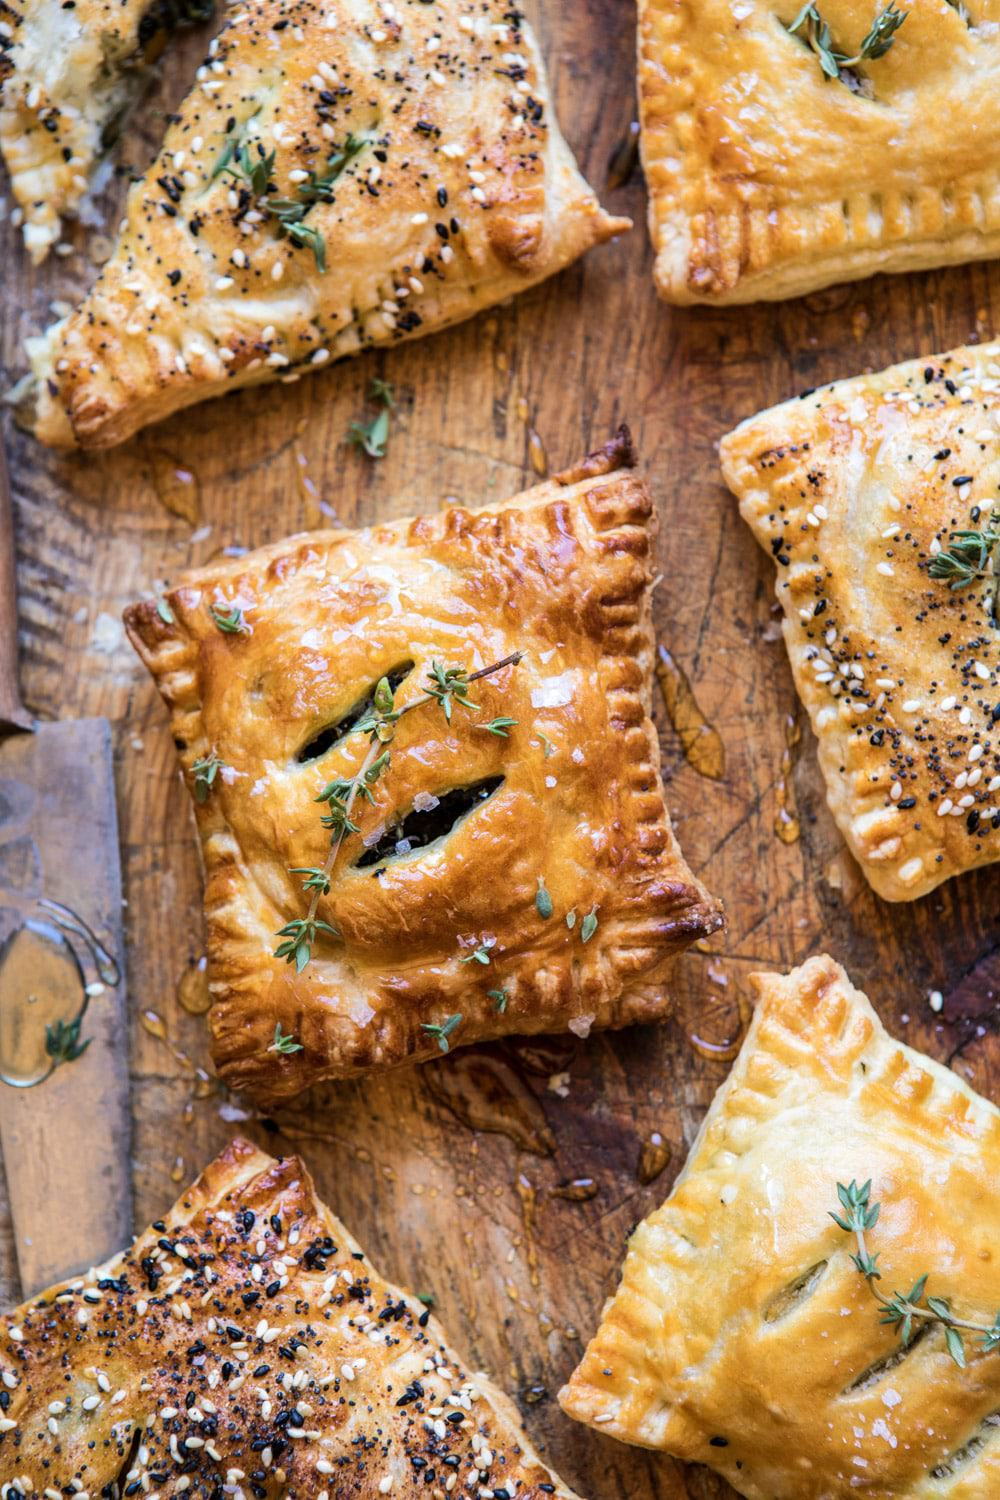 Caramelized Onion, Spinach And Cheddar Flaky Pastries